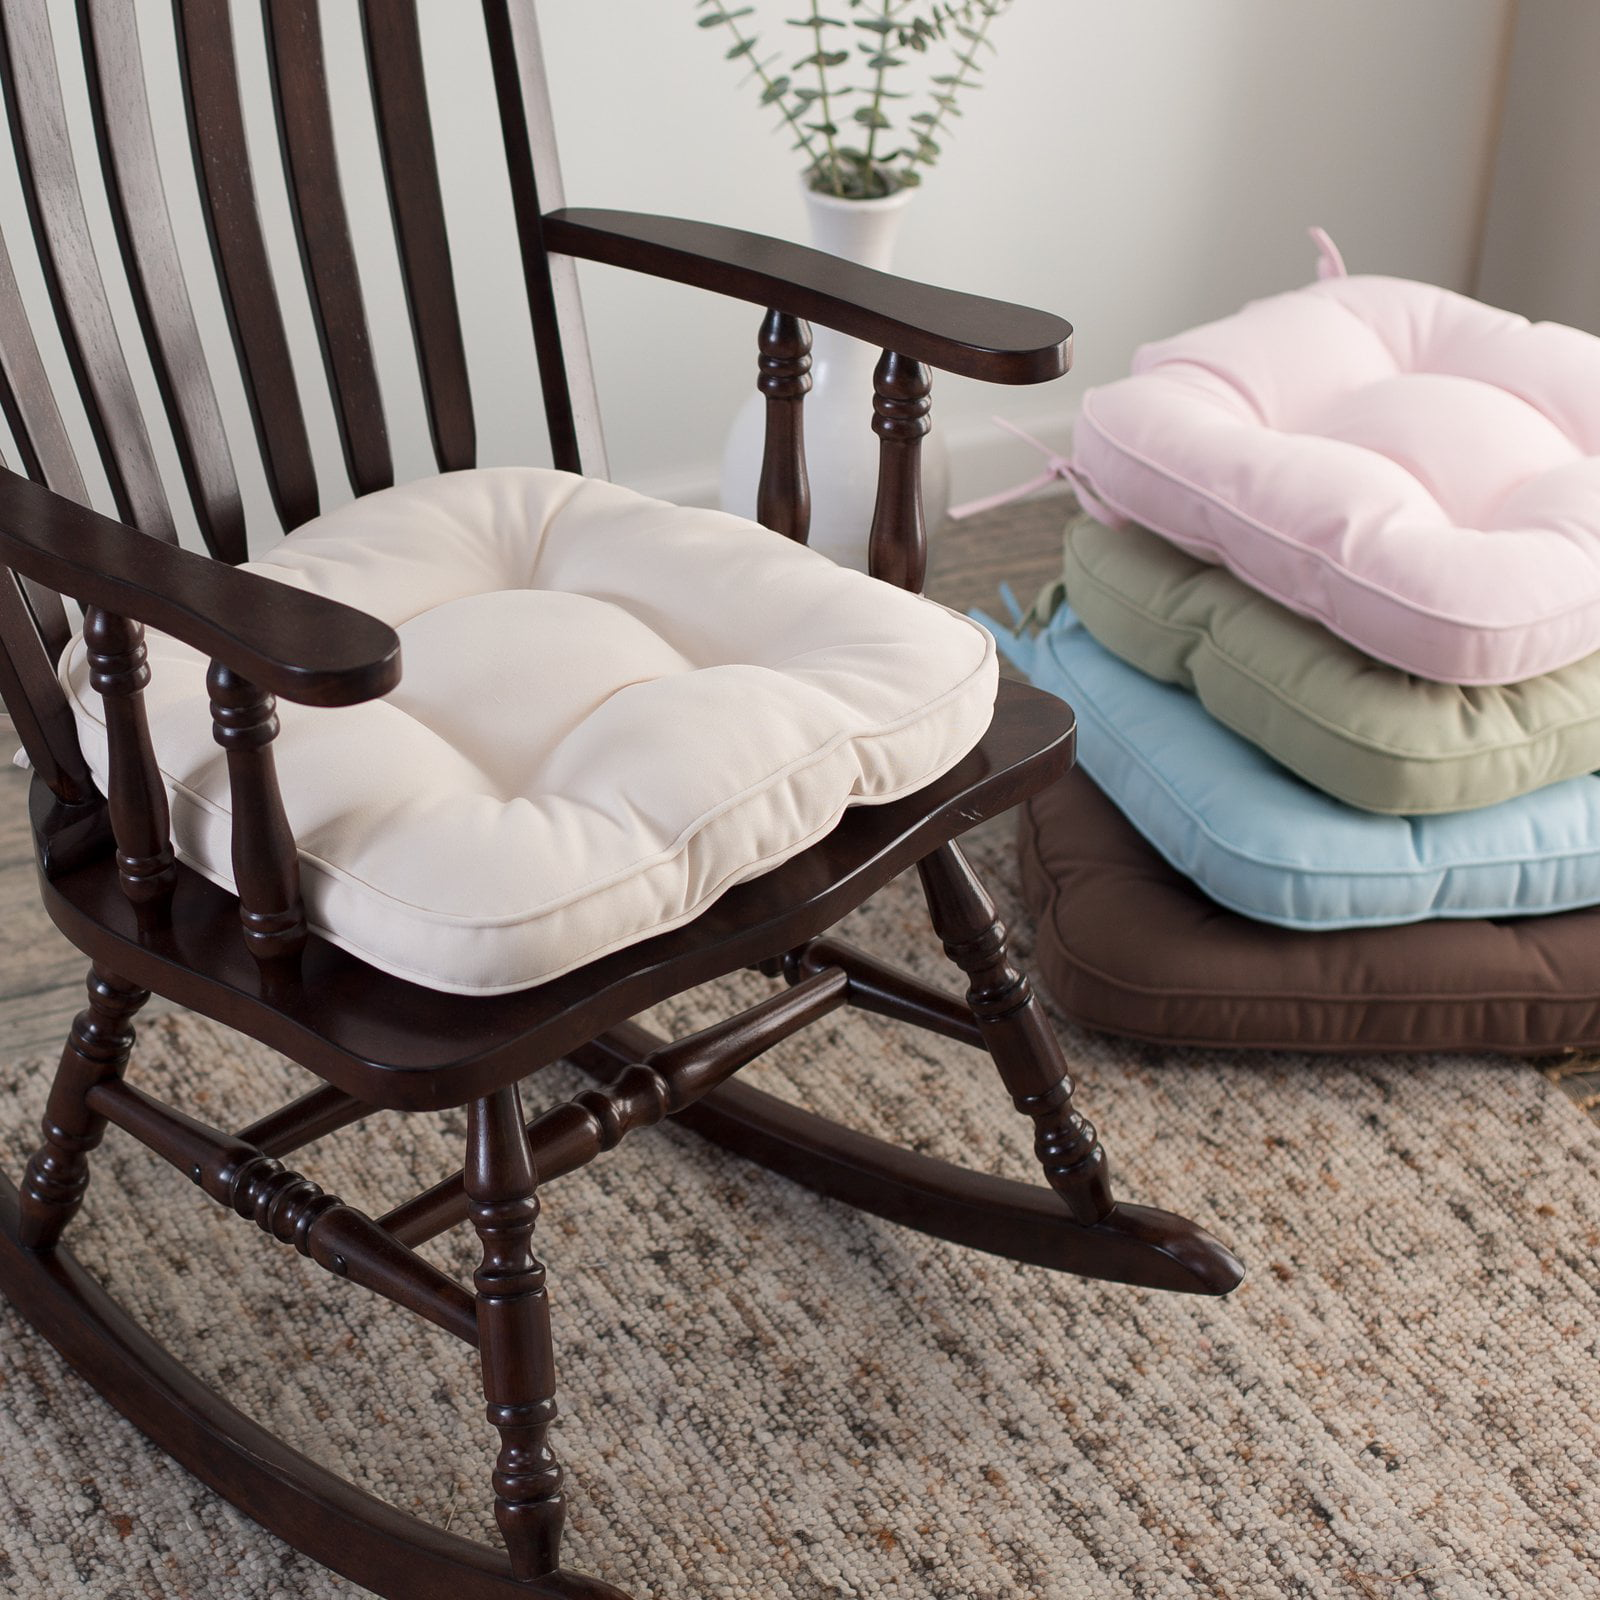 rocking chair cushions nursery Deauville 18 x 19 Tufted Nursery Rocker Cushion   Walmart.com rocking chair cushions nursery